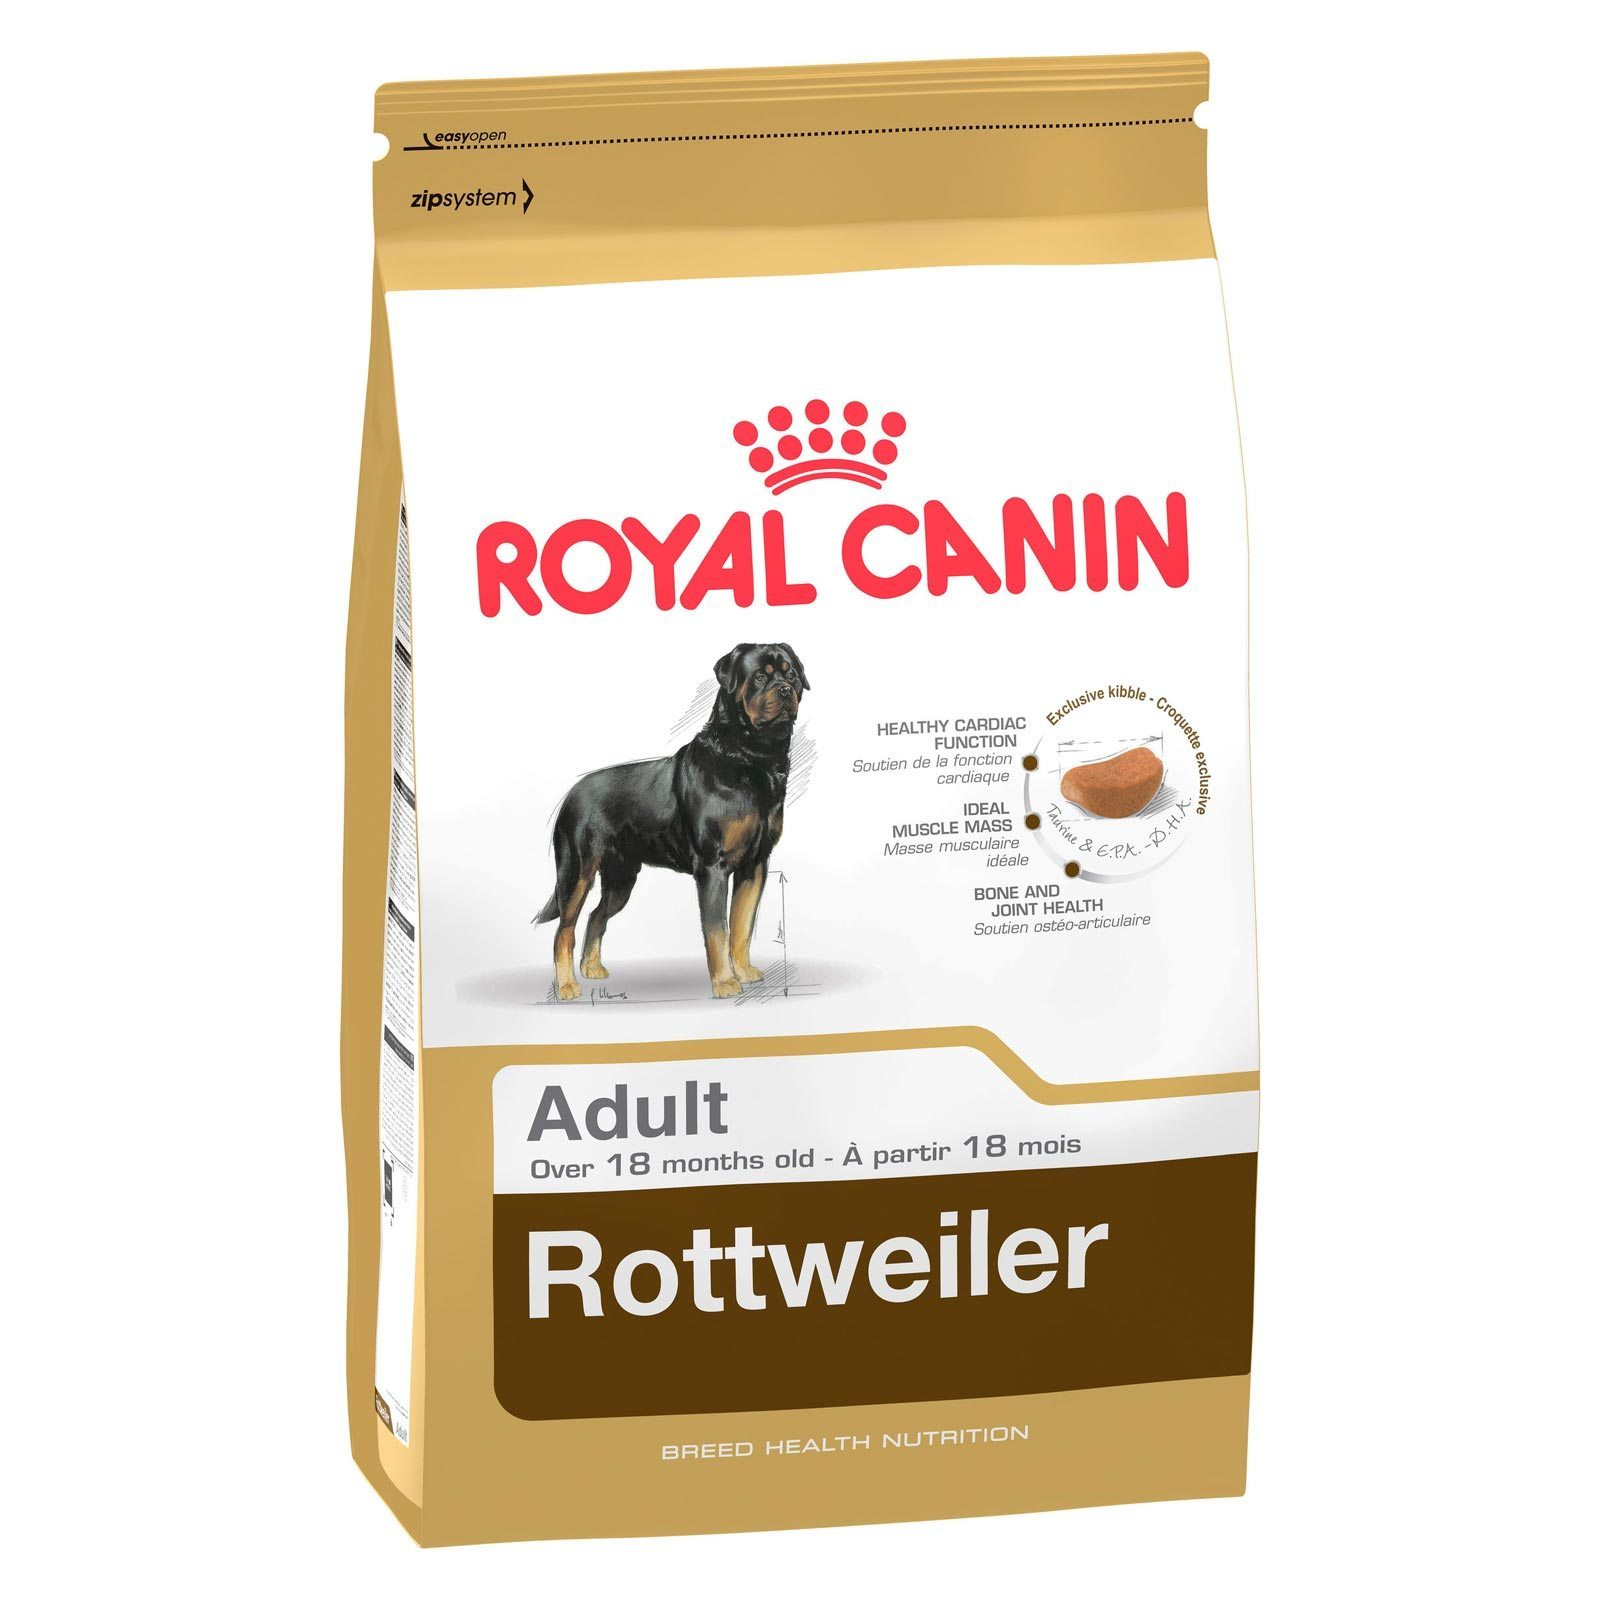 Royal Canin Rottweiler Adult - Pet Food - Pet Store - Pet supplies